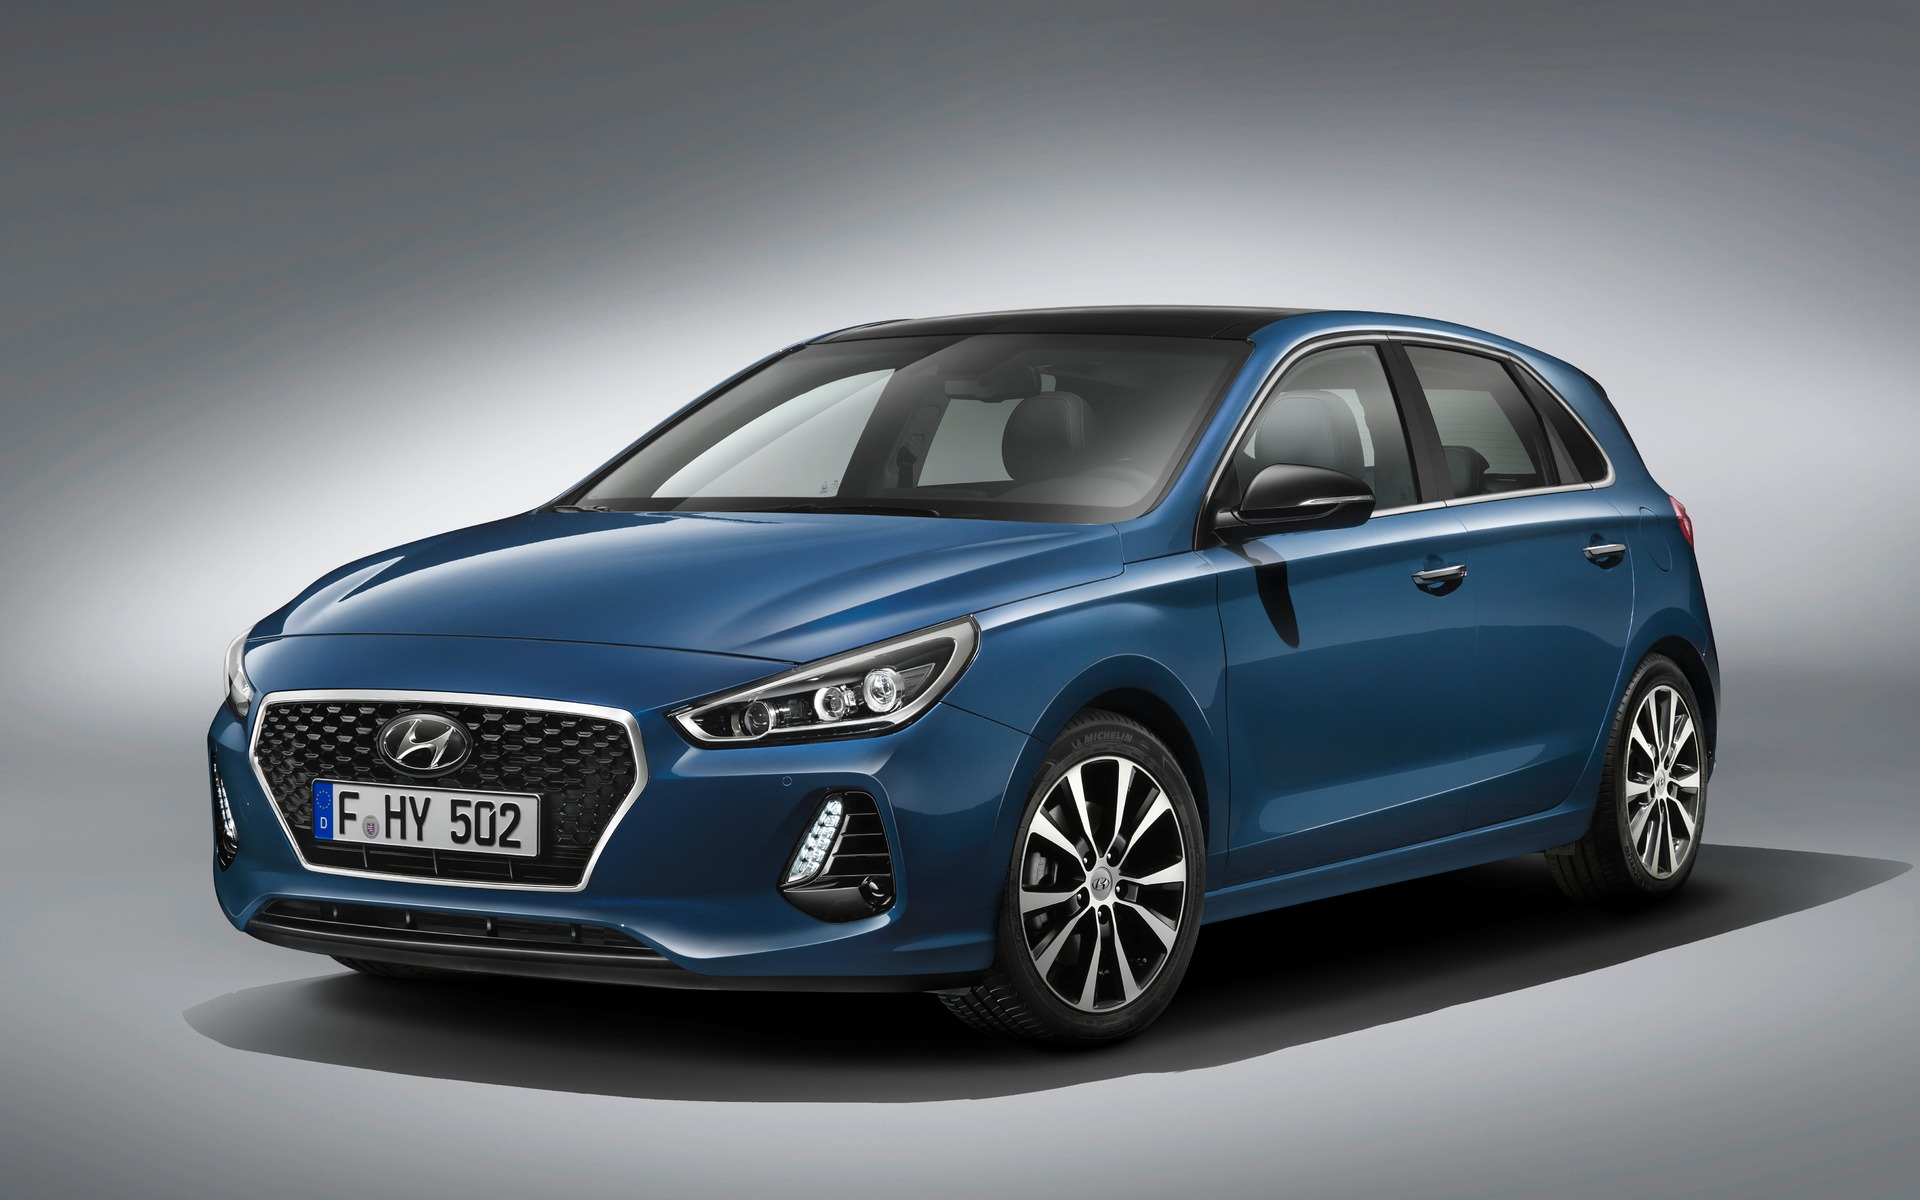 Hyundai i30: is this our next Elantra GT?